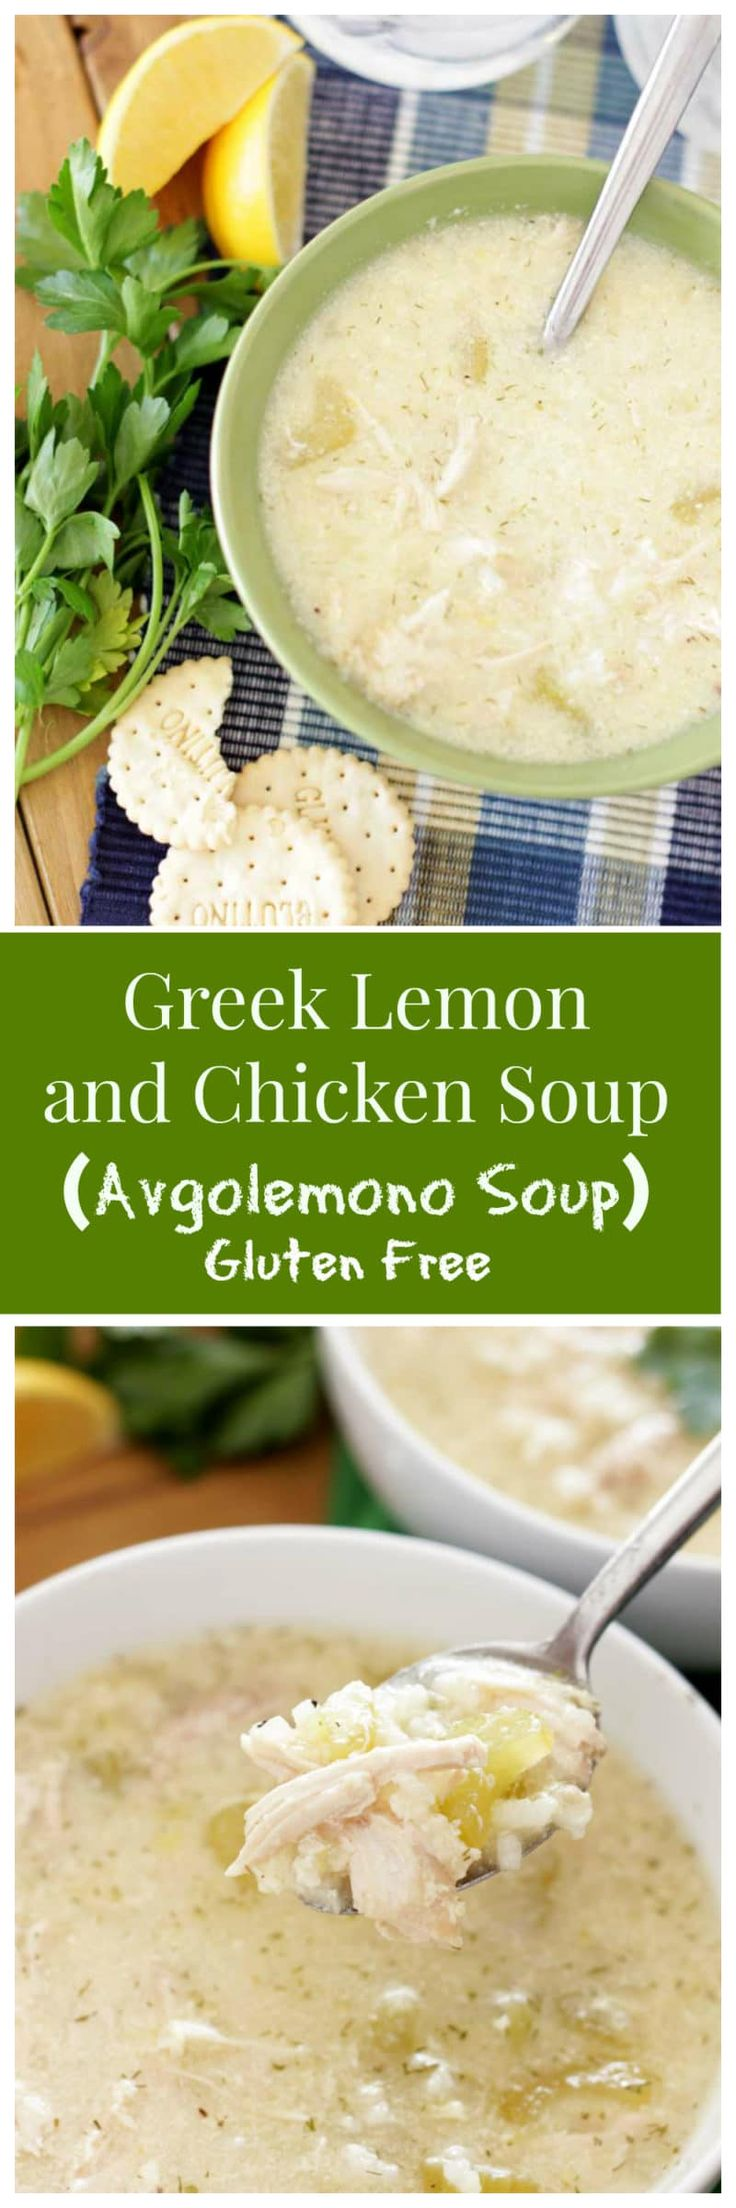 Greek Lemon Soup (Avgolemono Soup) | Recipes Worth Repeating | Incredibly tasty and flavorful, this Greek Lemon and Chicken Soup is perfect for cozying up with during the cold winter days!